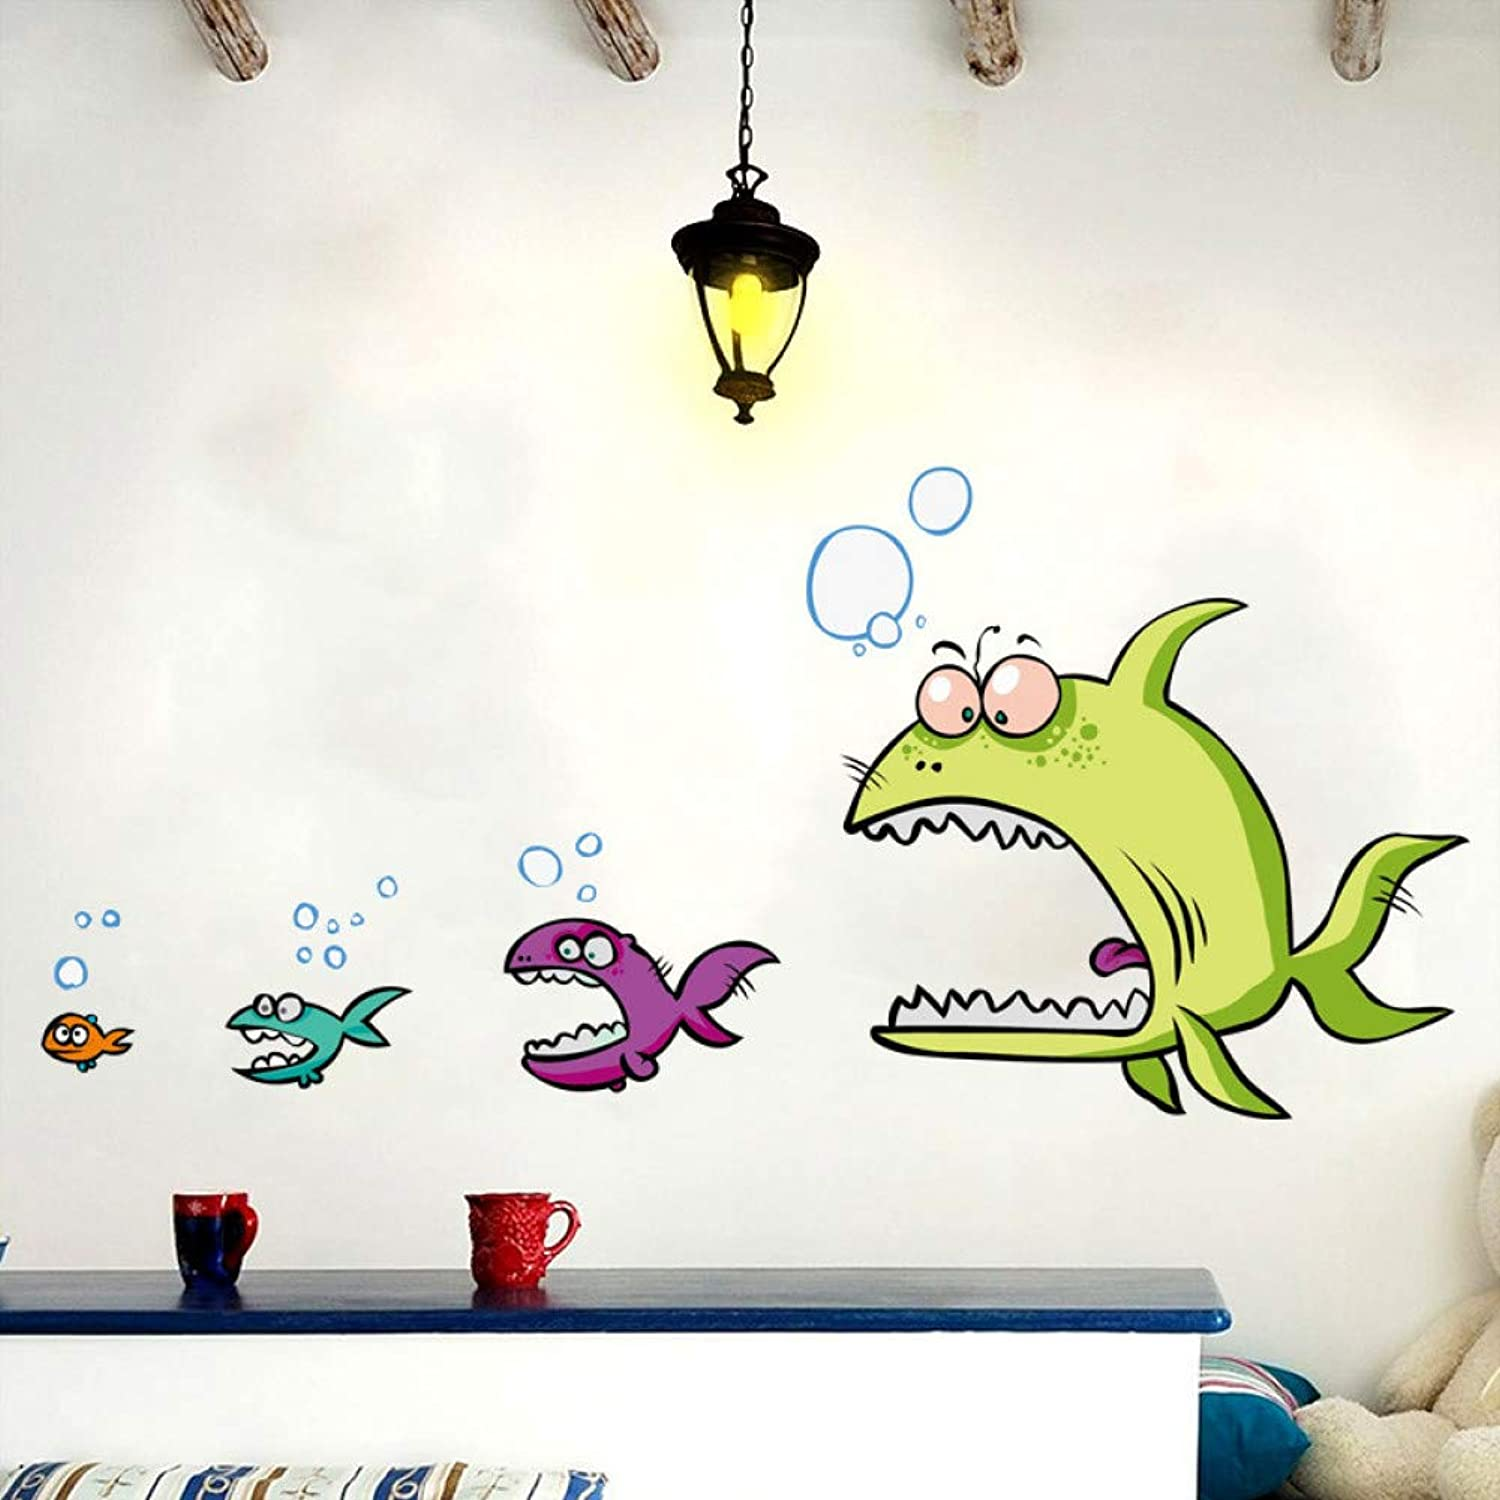 QIANMAO Funny Fish Eat Fish 3D Wall Stickers Home Decor for Kitchen Wall Kids Room PVC Wall Decals Adhesive Dinner Decoration 47  100Cm